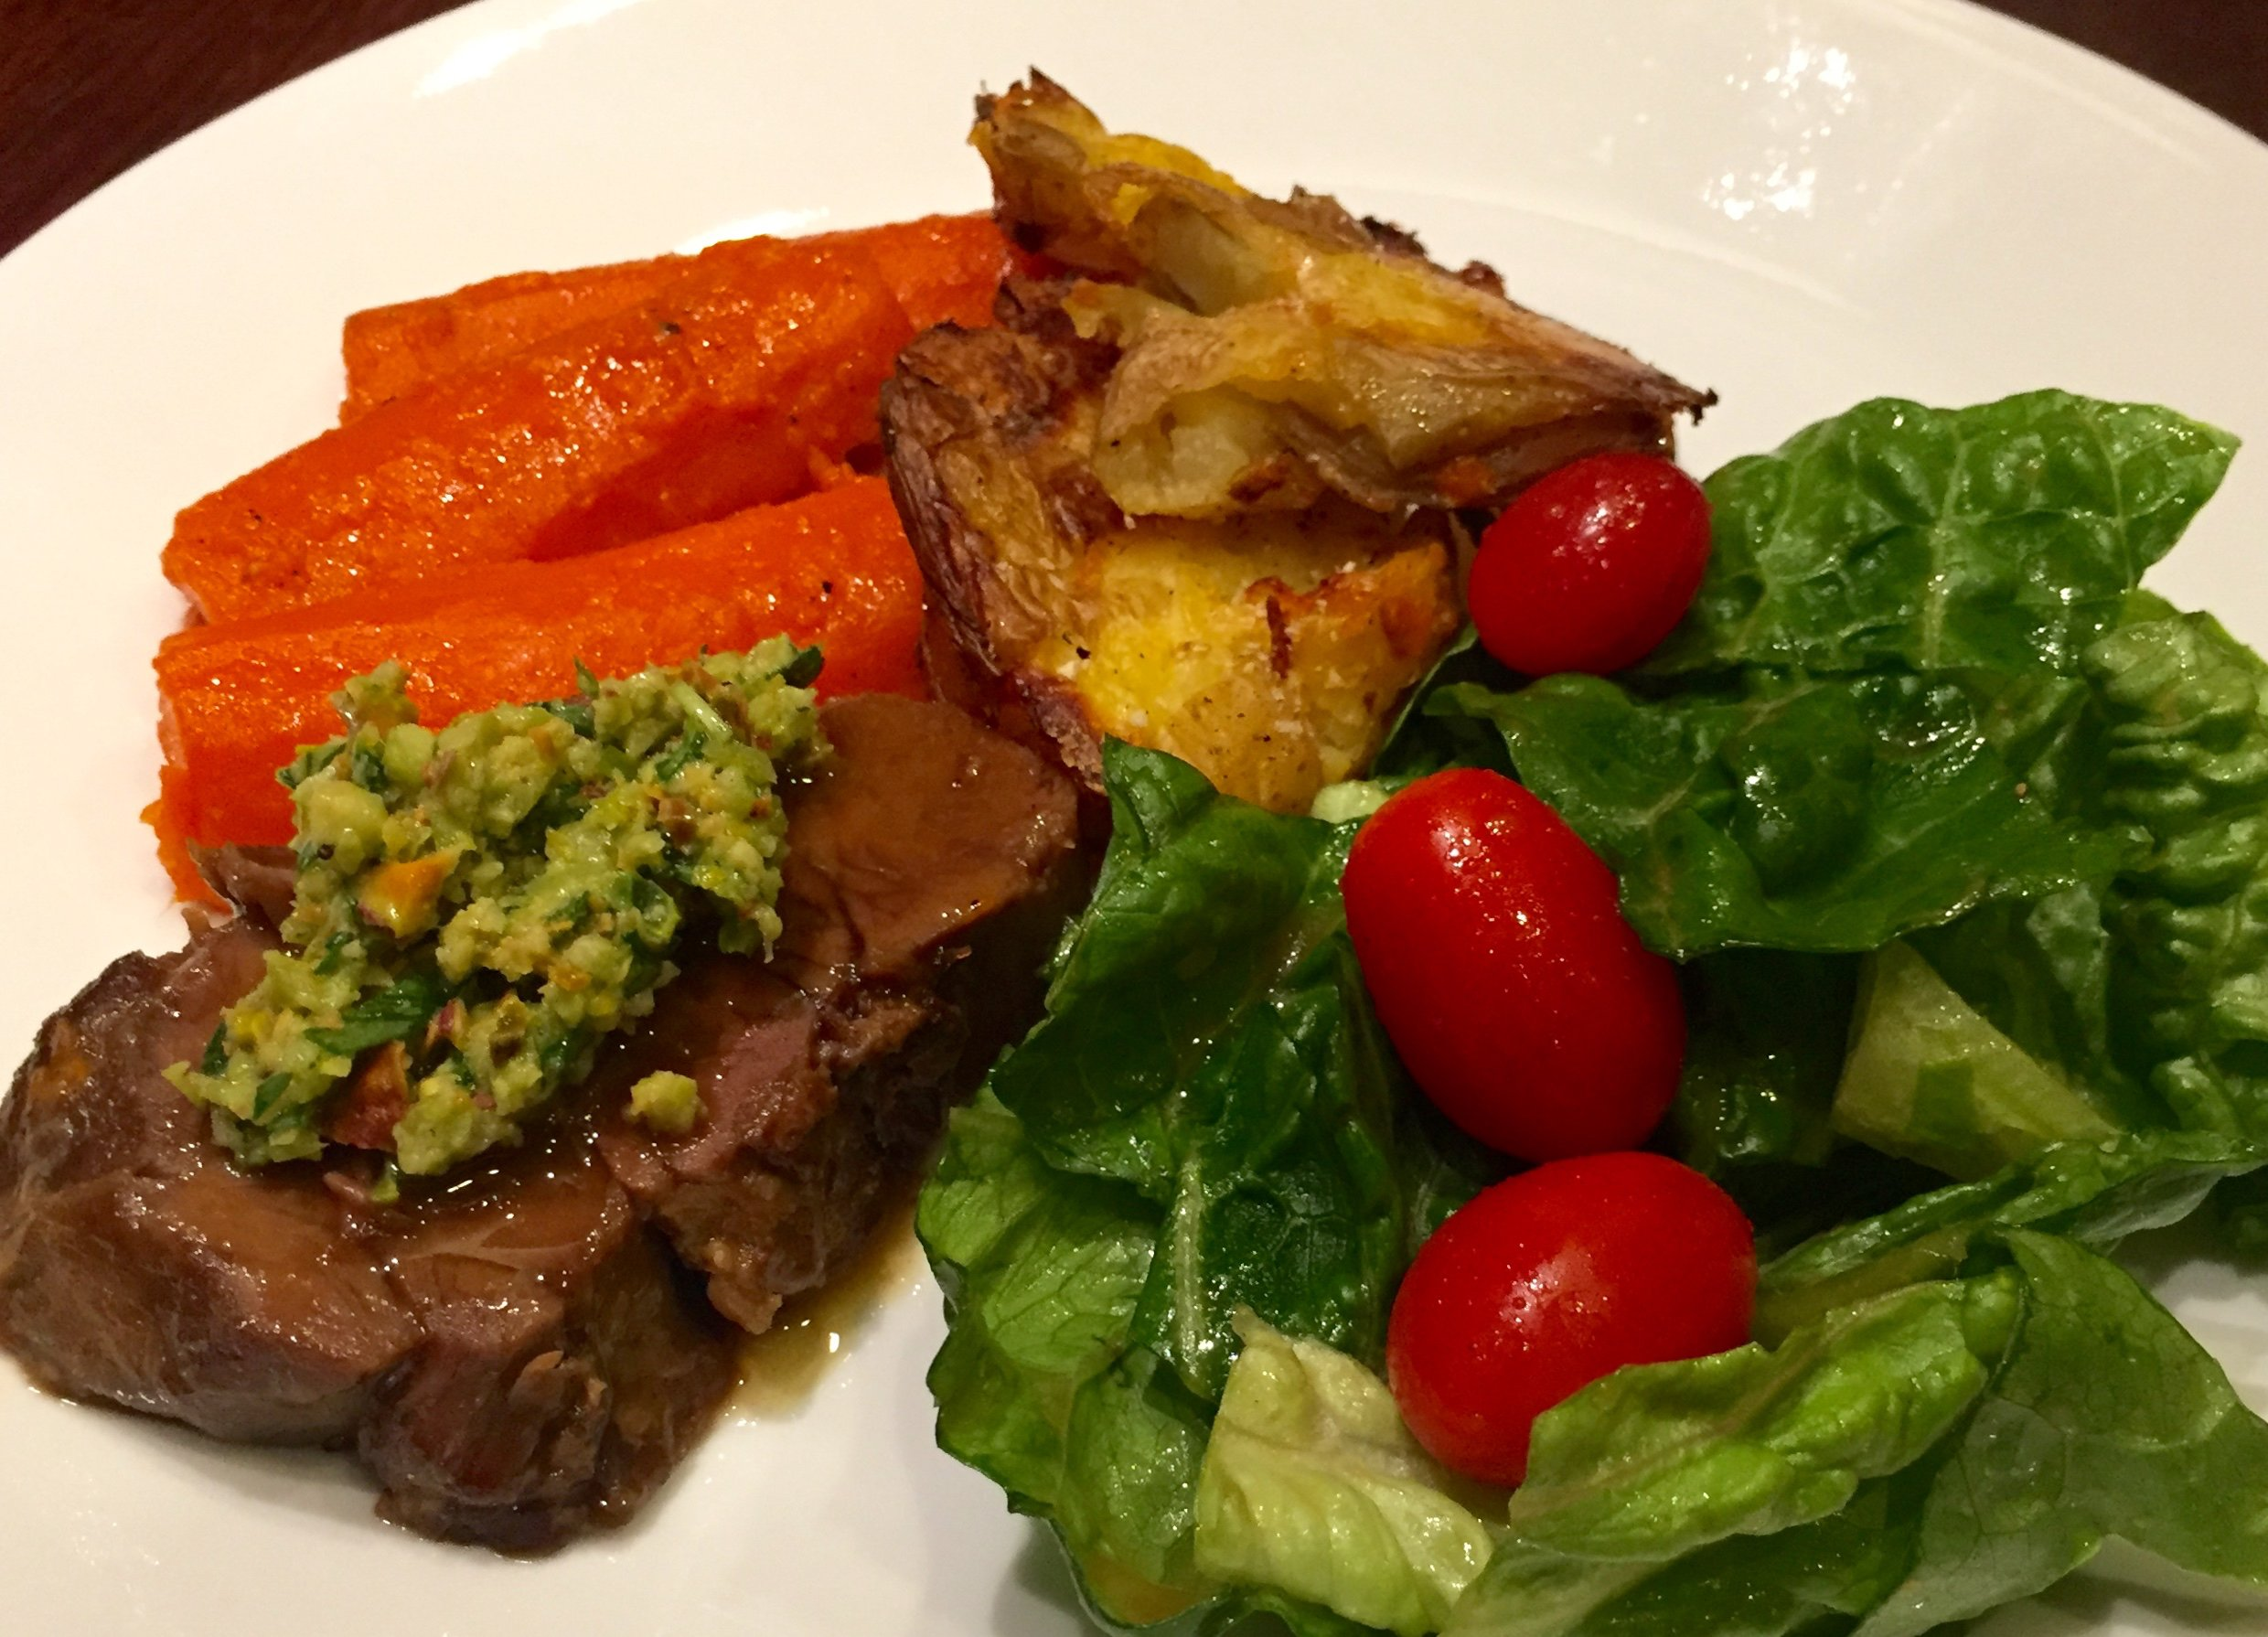 salad with cherry tomatoes, olive oil, mustard, maple syrup, balsamic vinegar - leg of lamb with olives, pistachios, tarragon, lemon, garlic - caramelized carrots - roasted potatoes